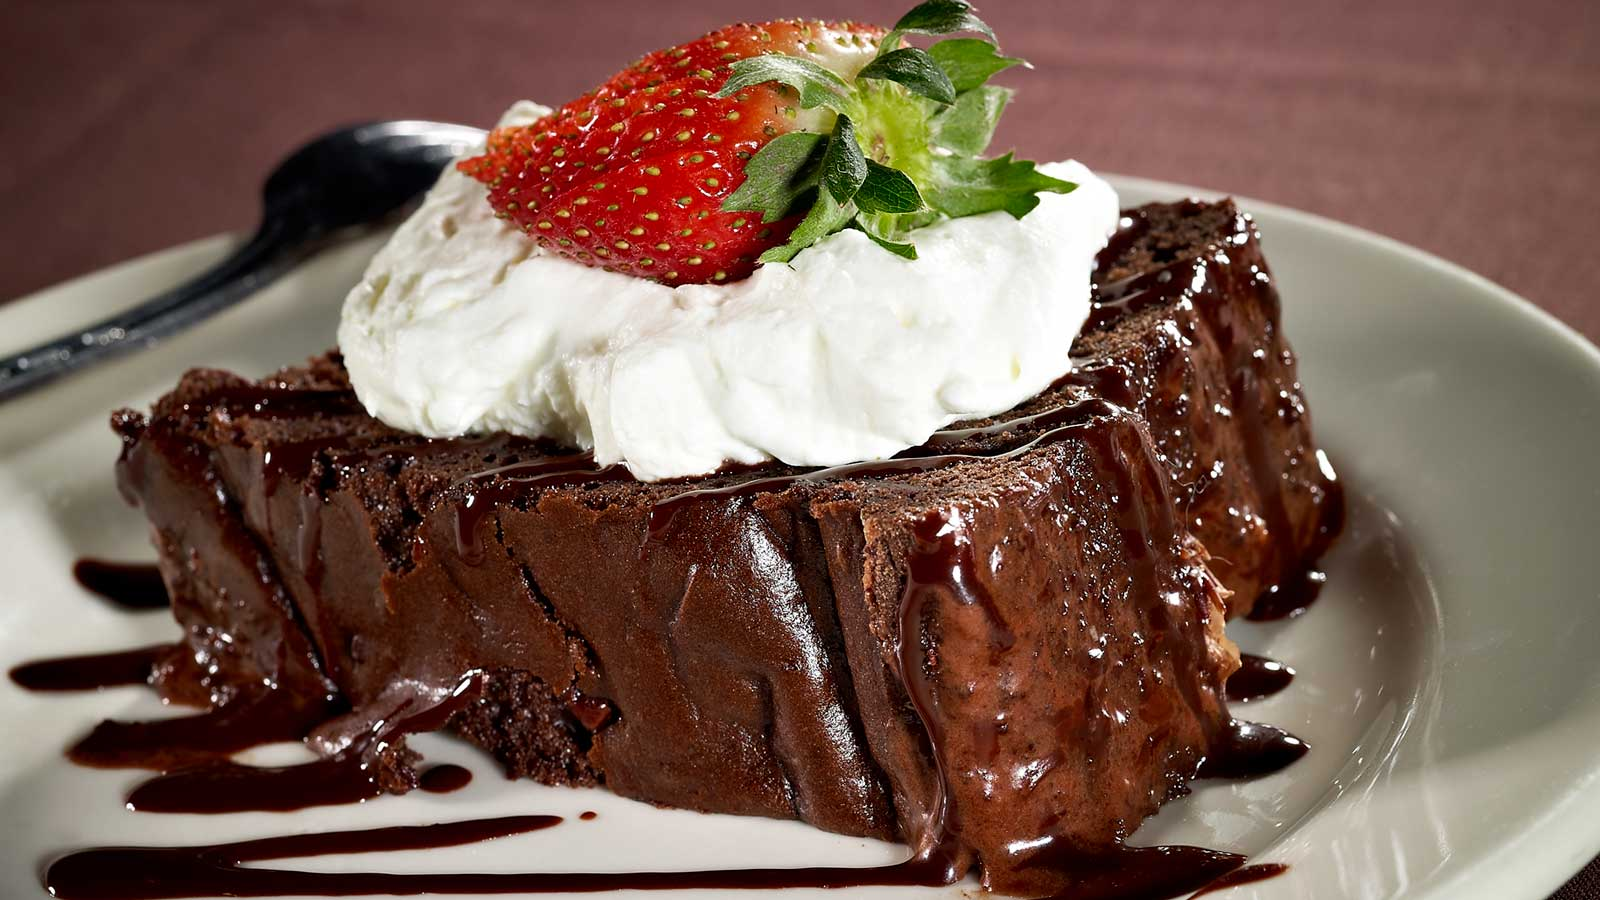 steakhouse-menu-favorites-cake.jpg